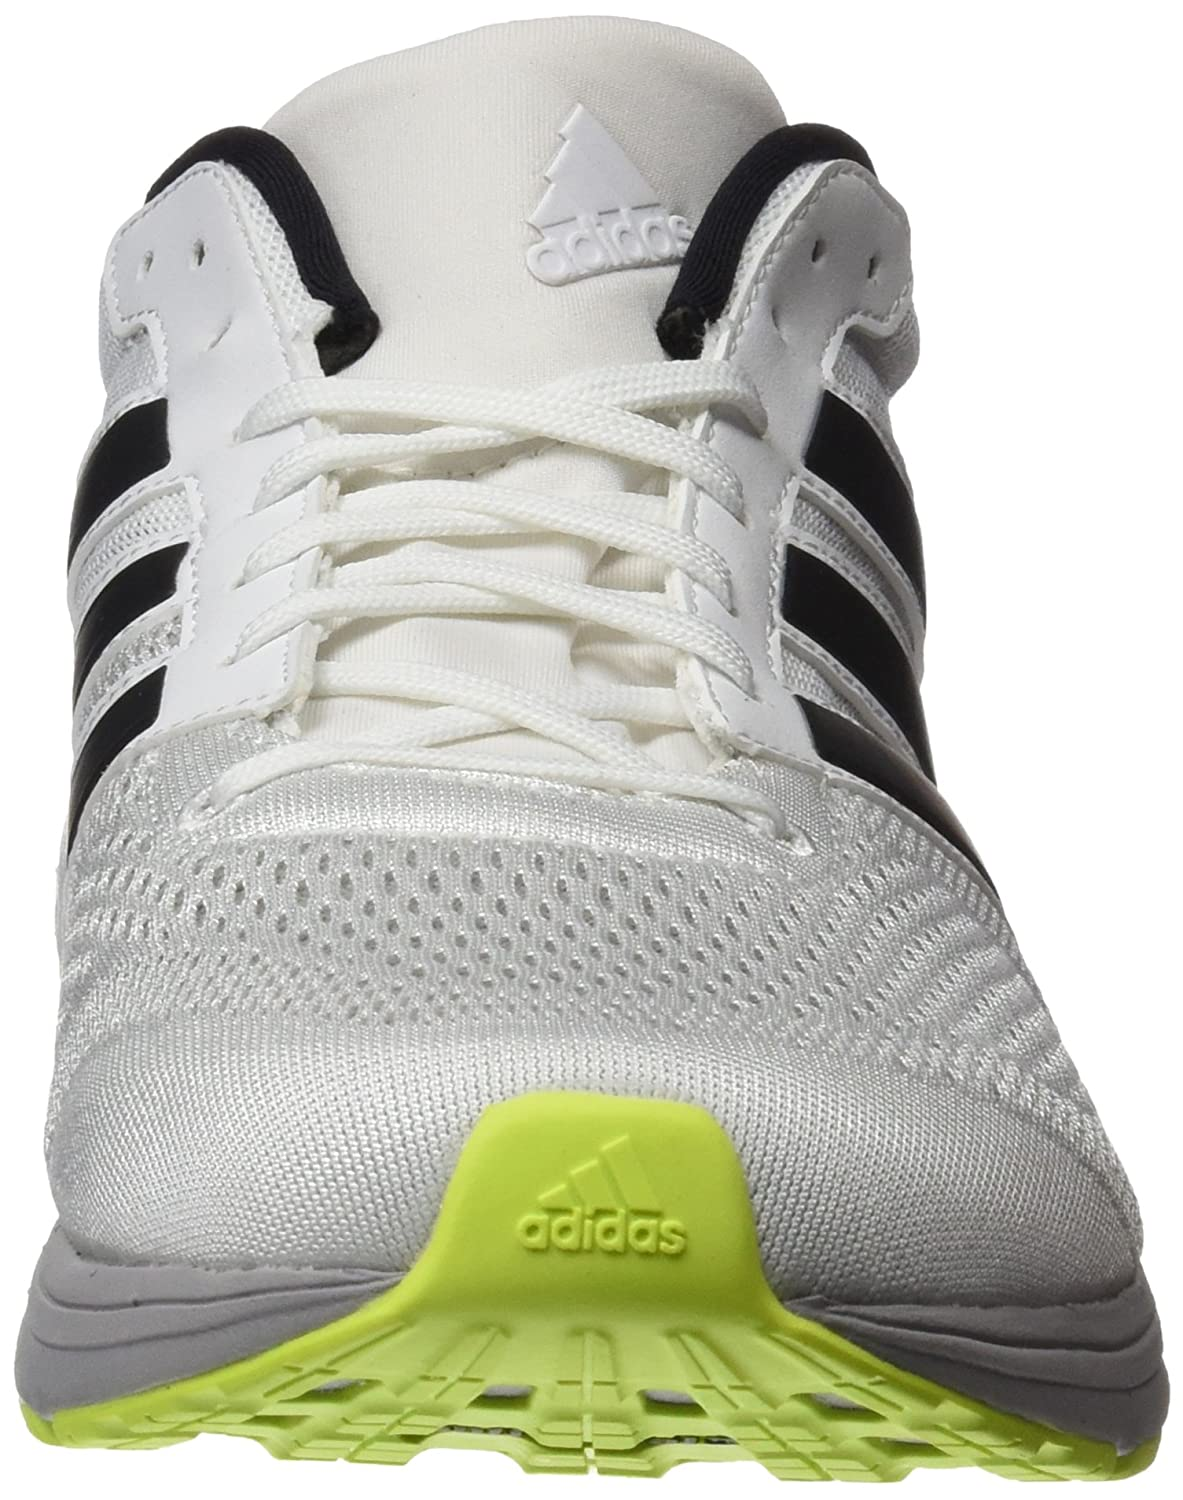 Adidas Adizero Boston Boost 6 Amazon jTeu3g3h